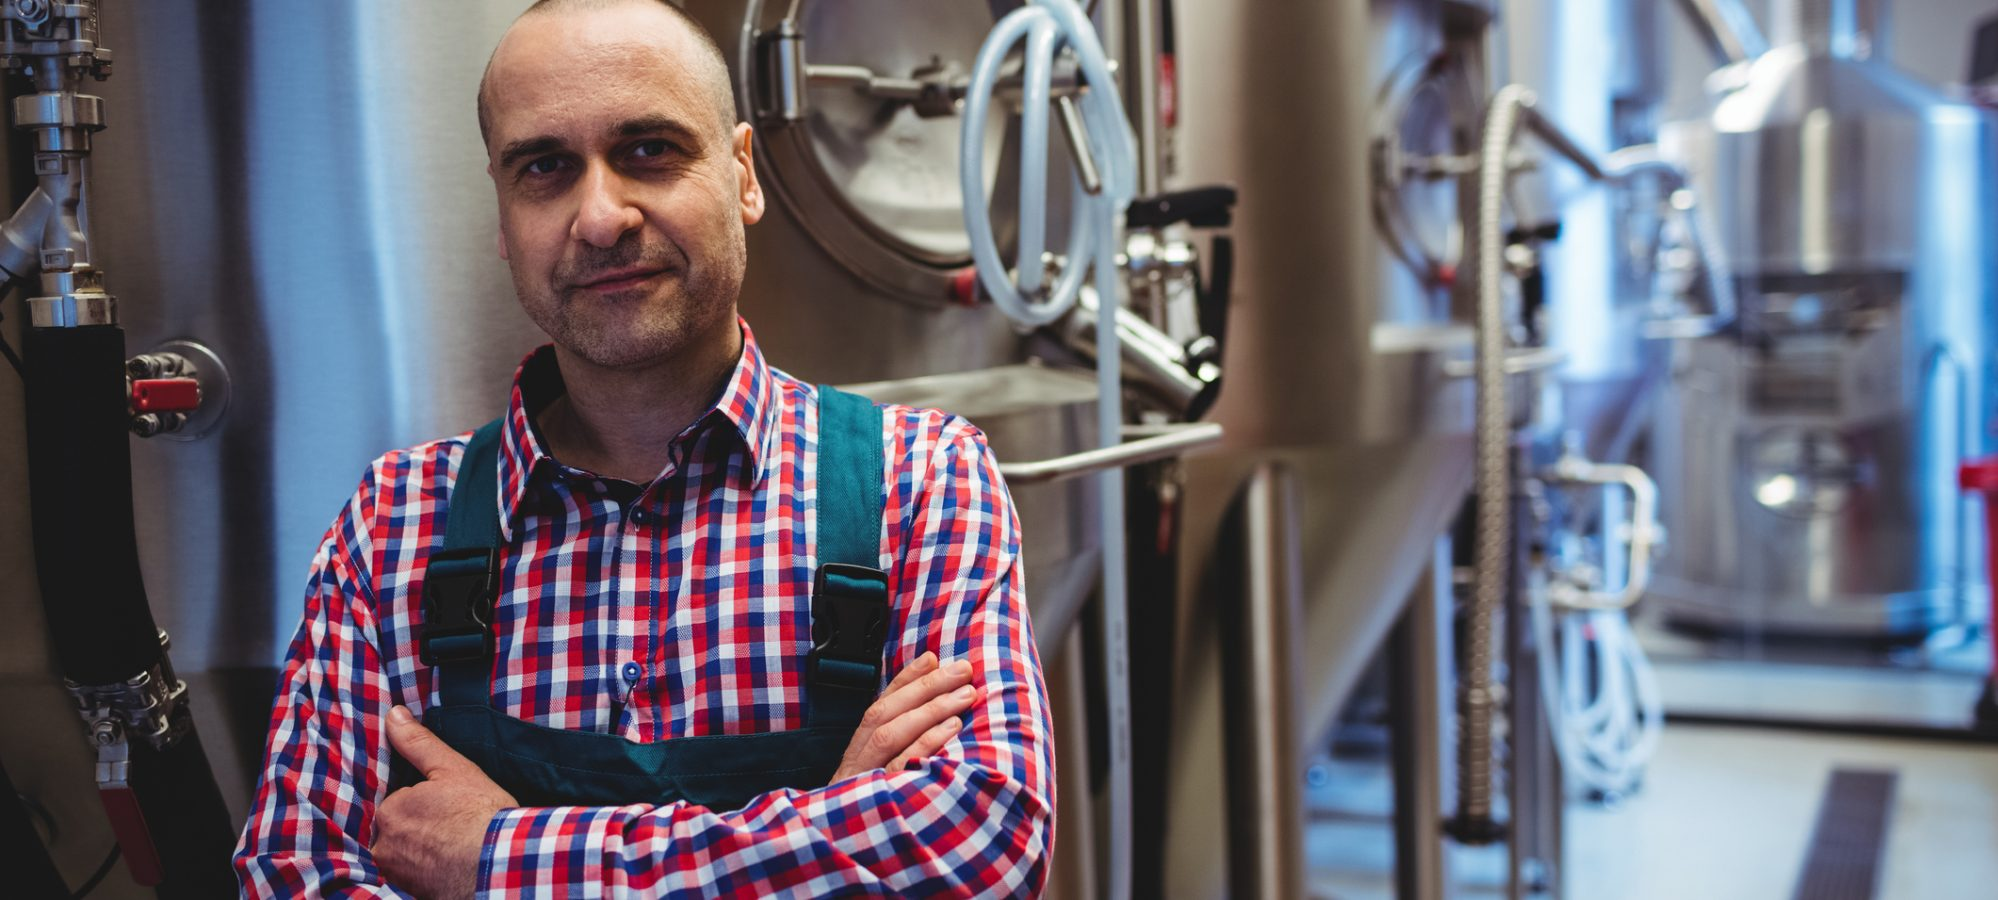 Image of man with arms crossed standing by storage tanks at brewery - retained earnings